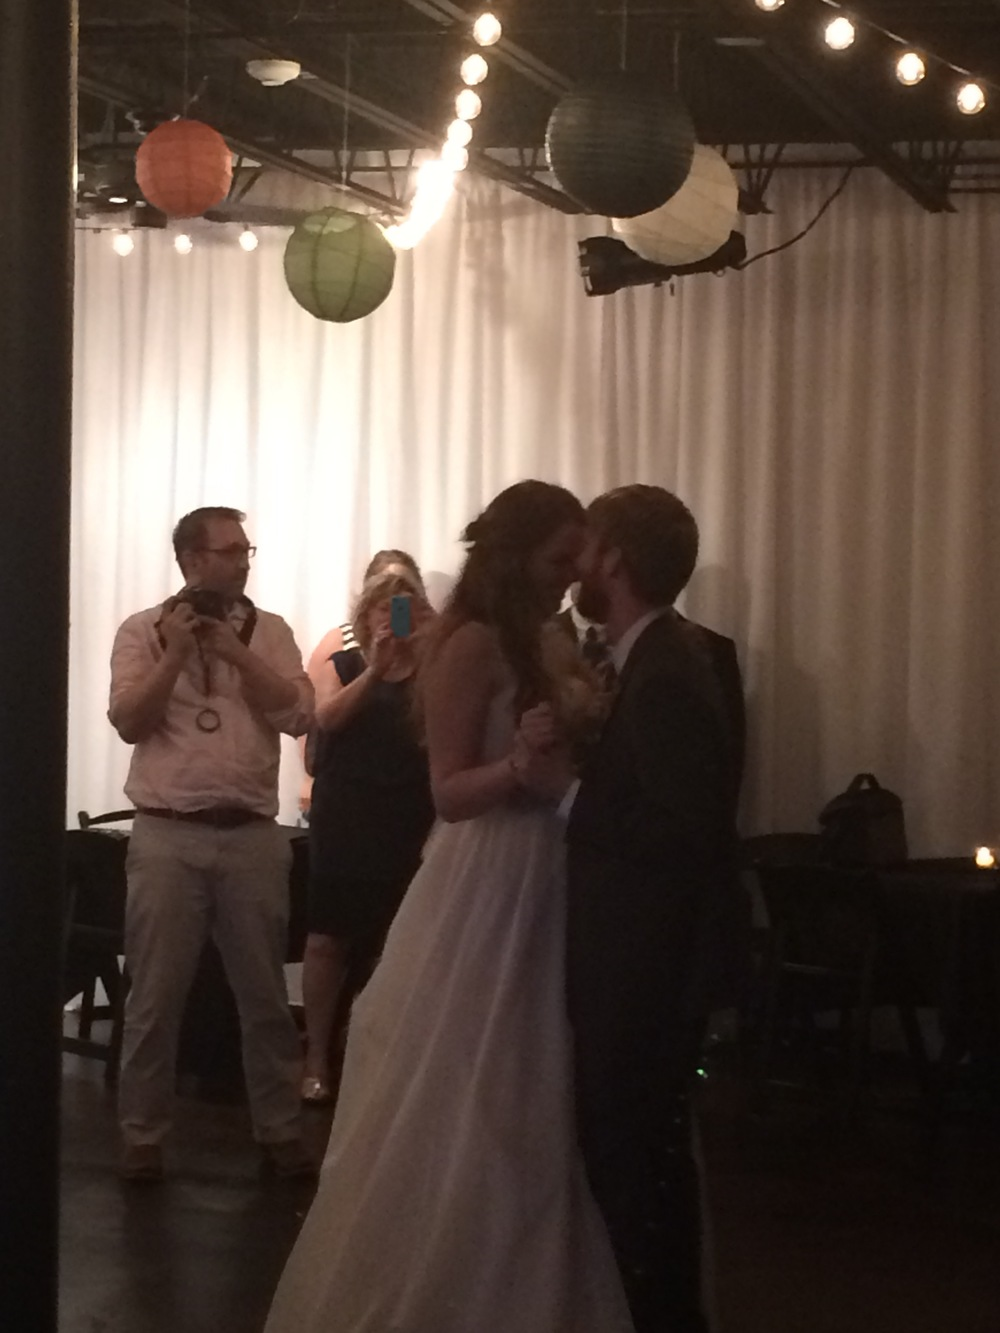 The bride and groom's first dance! I apologize for the dark and blurry picture!